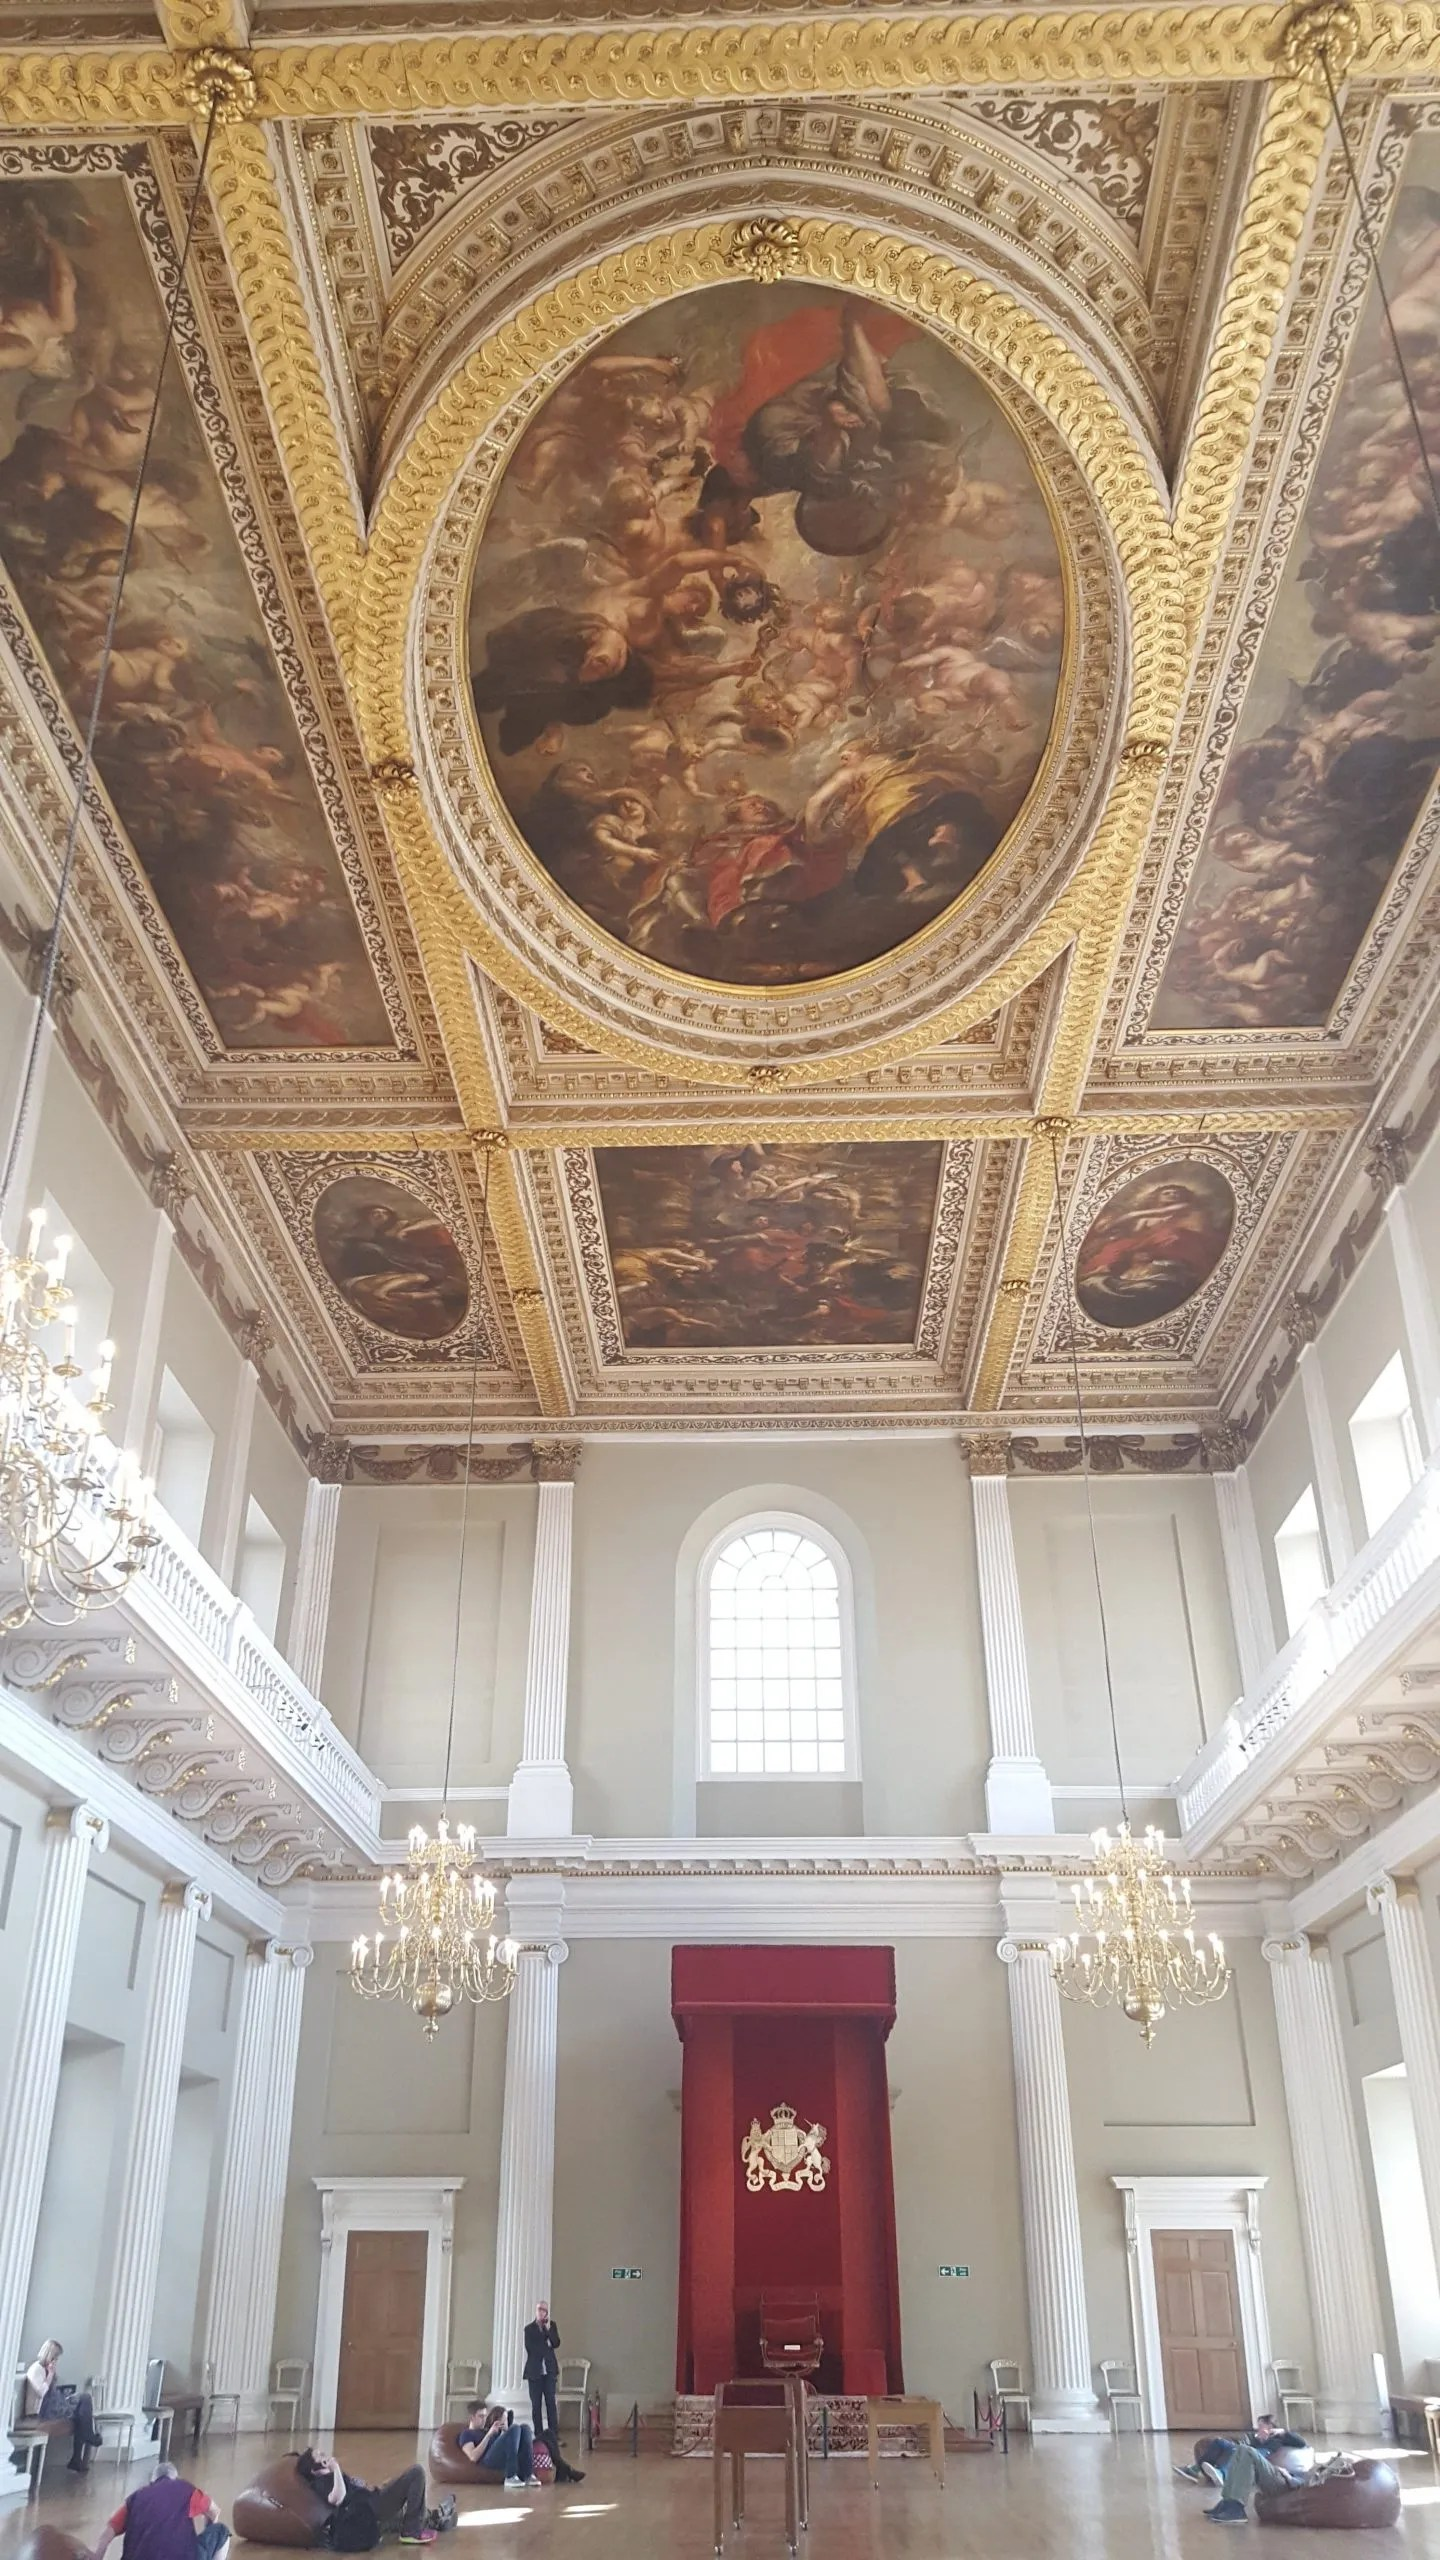 Banqueting House Rubens Ceiling